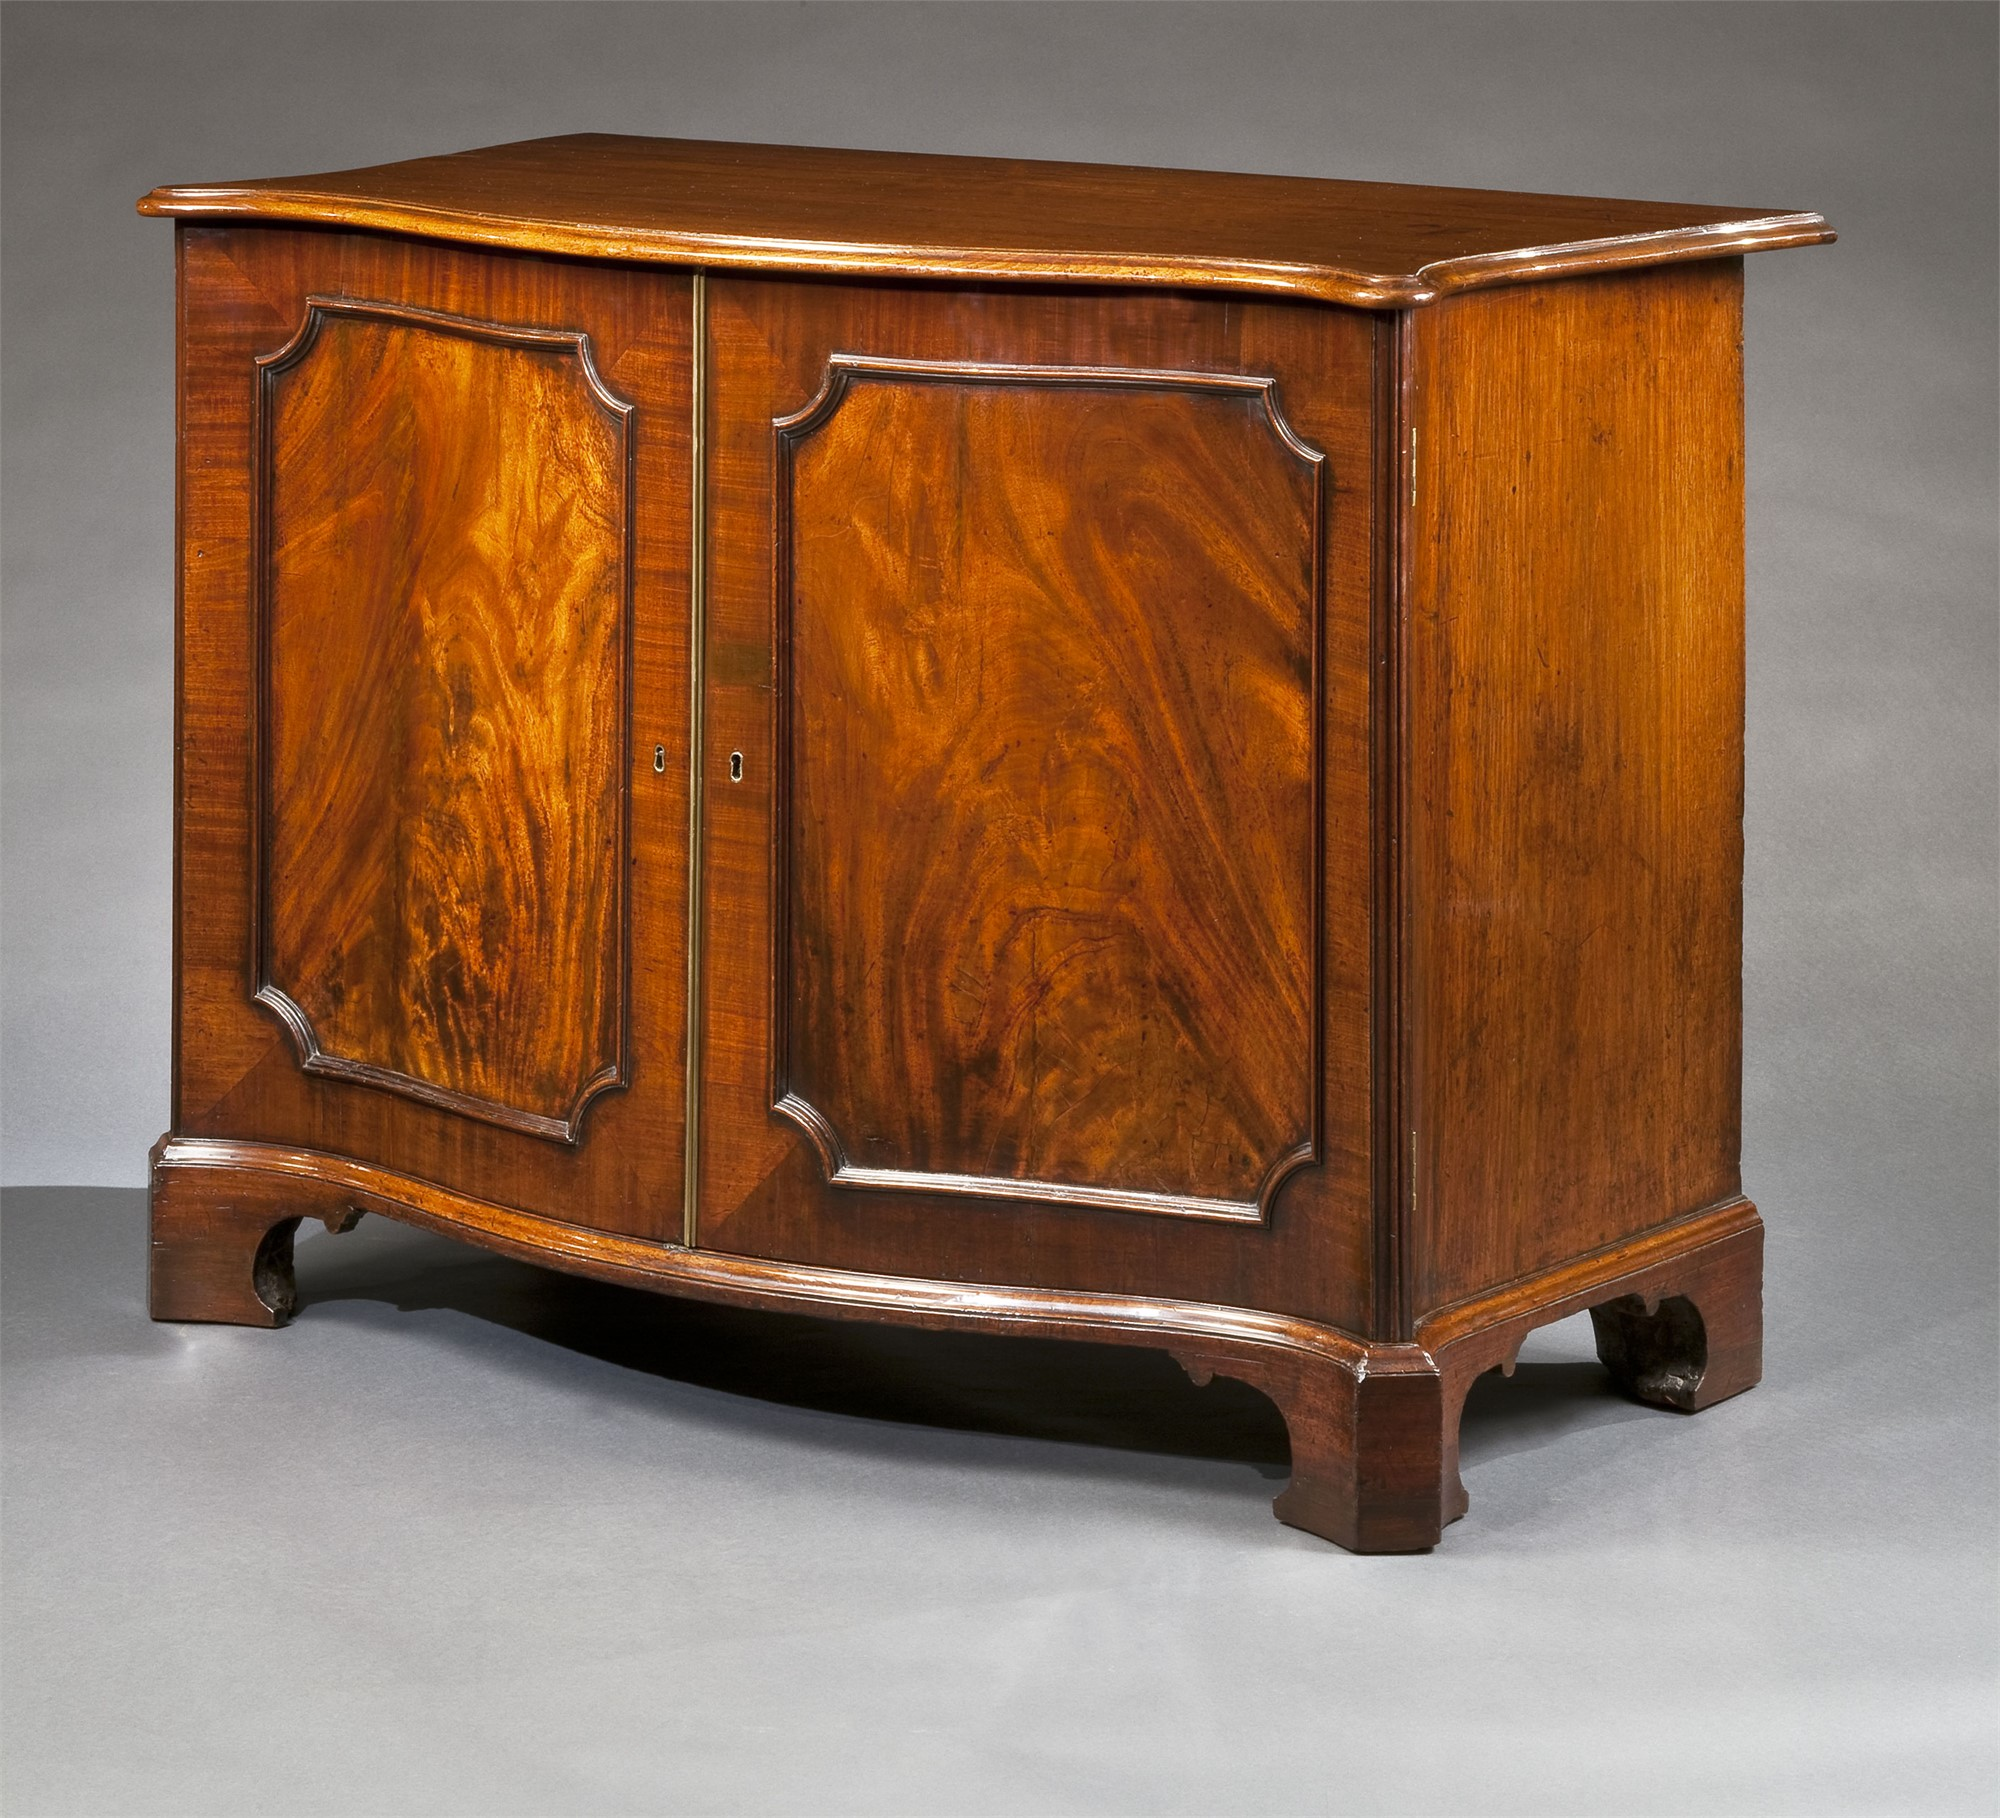 GEORGE III MAHOGANY SERPENTINE COMMODE by Thomas Chippendale